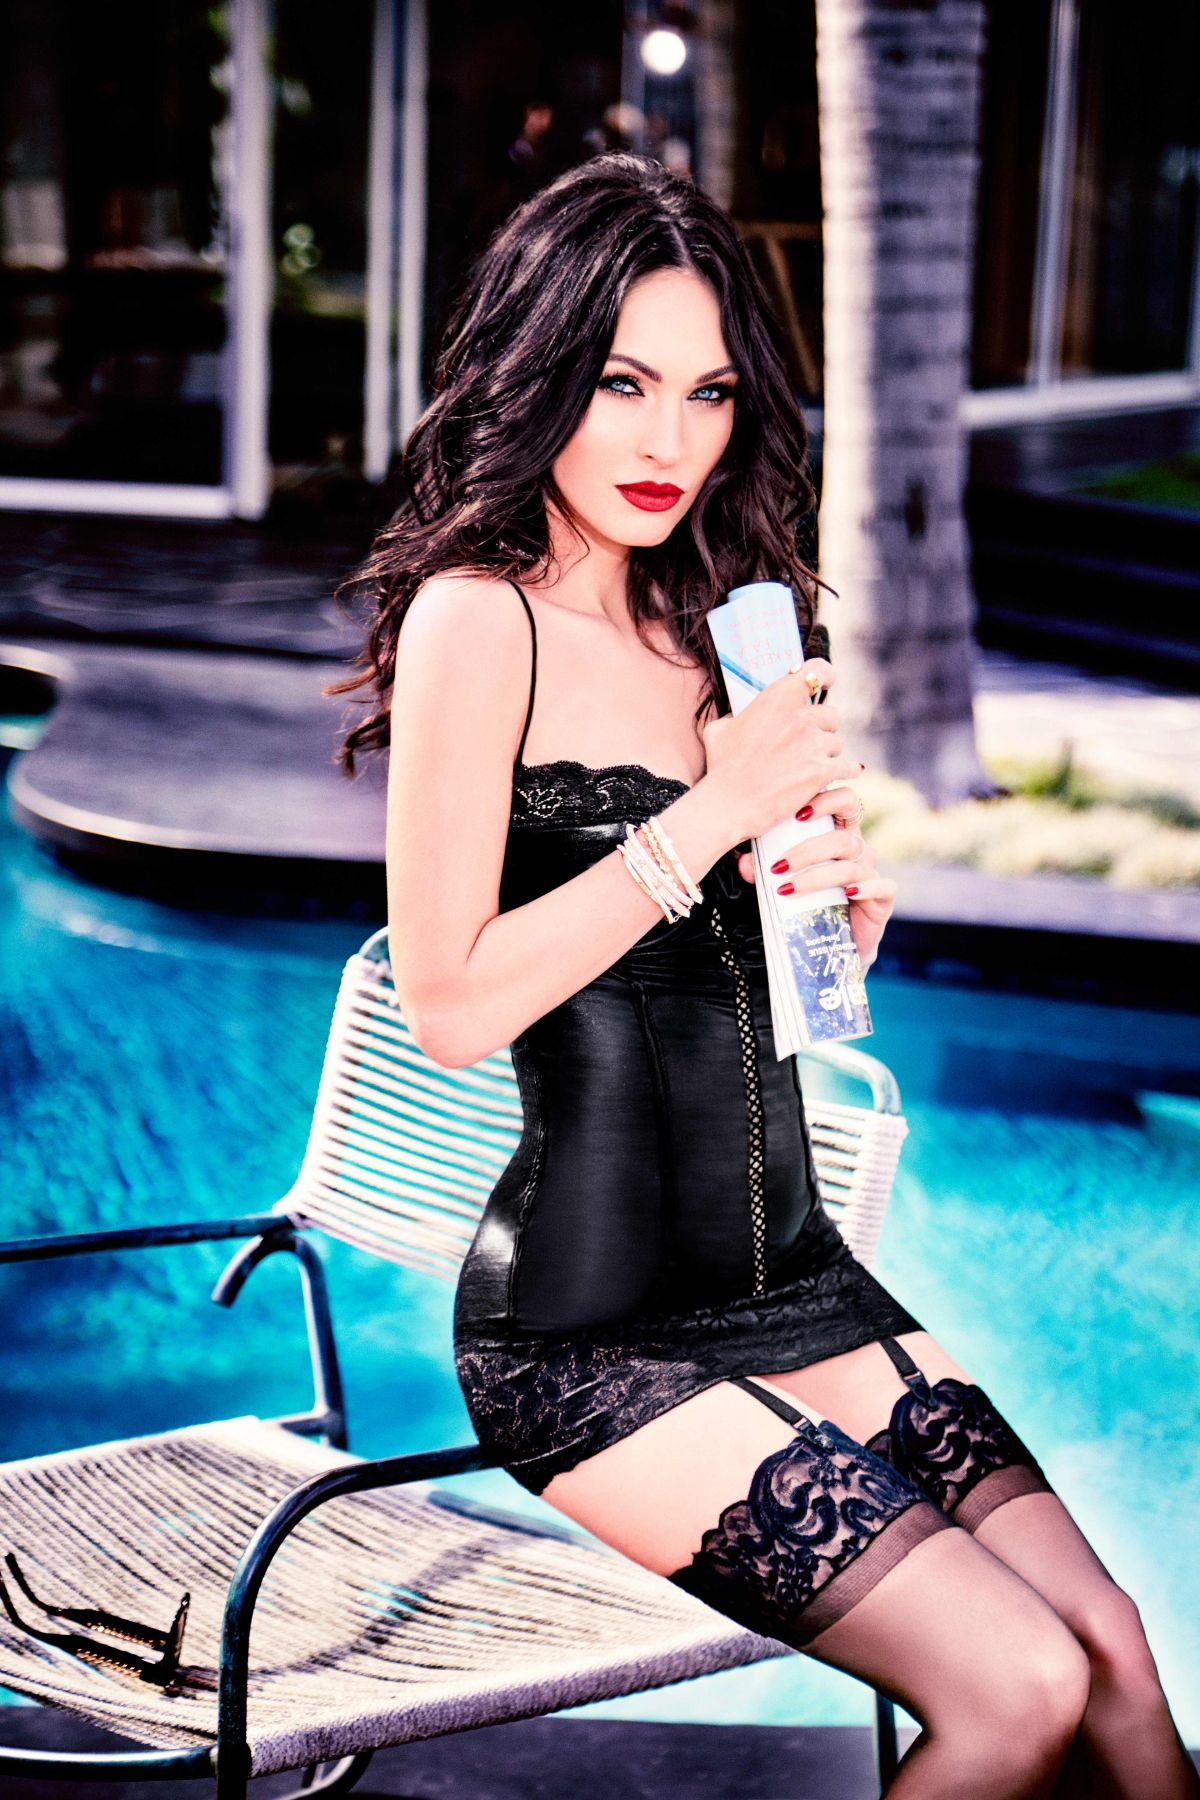 Upload Date 2017 03 16 Number Of Votes 9 There Are 11721 More Pics In The Megan Fox Photo Gallery